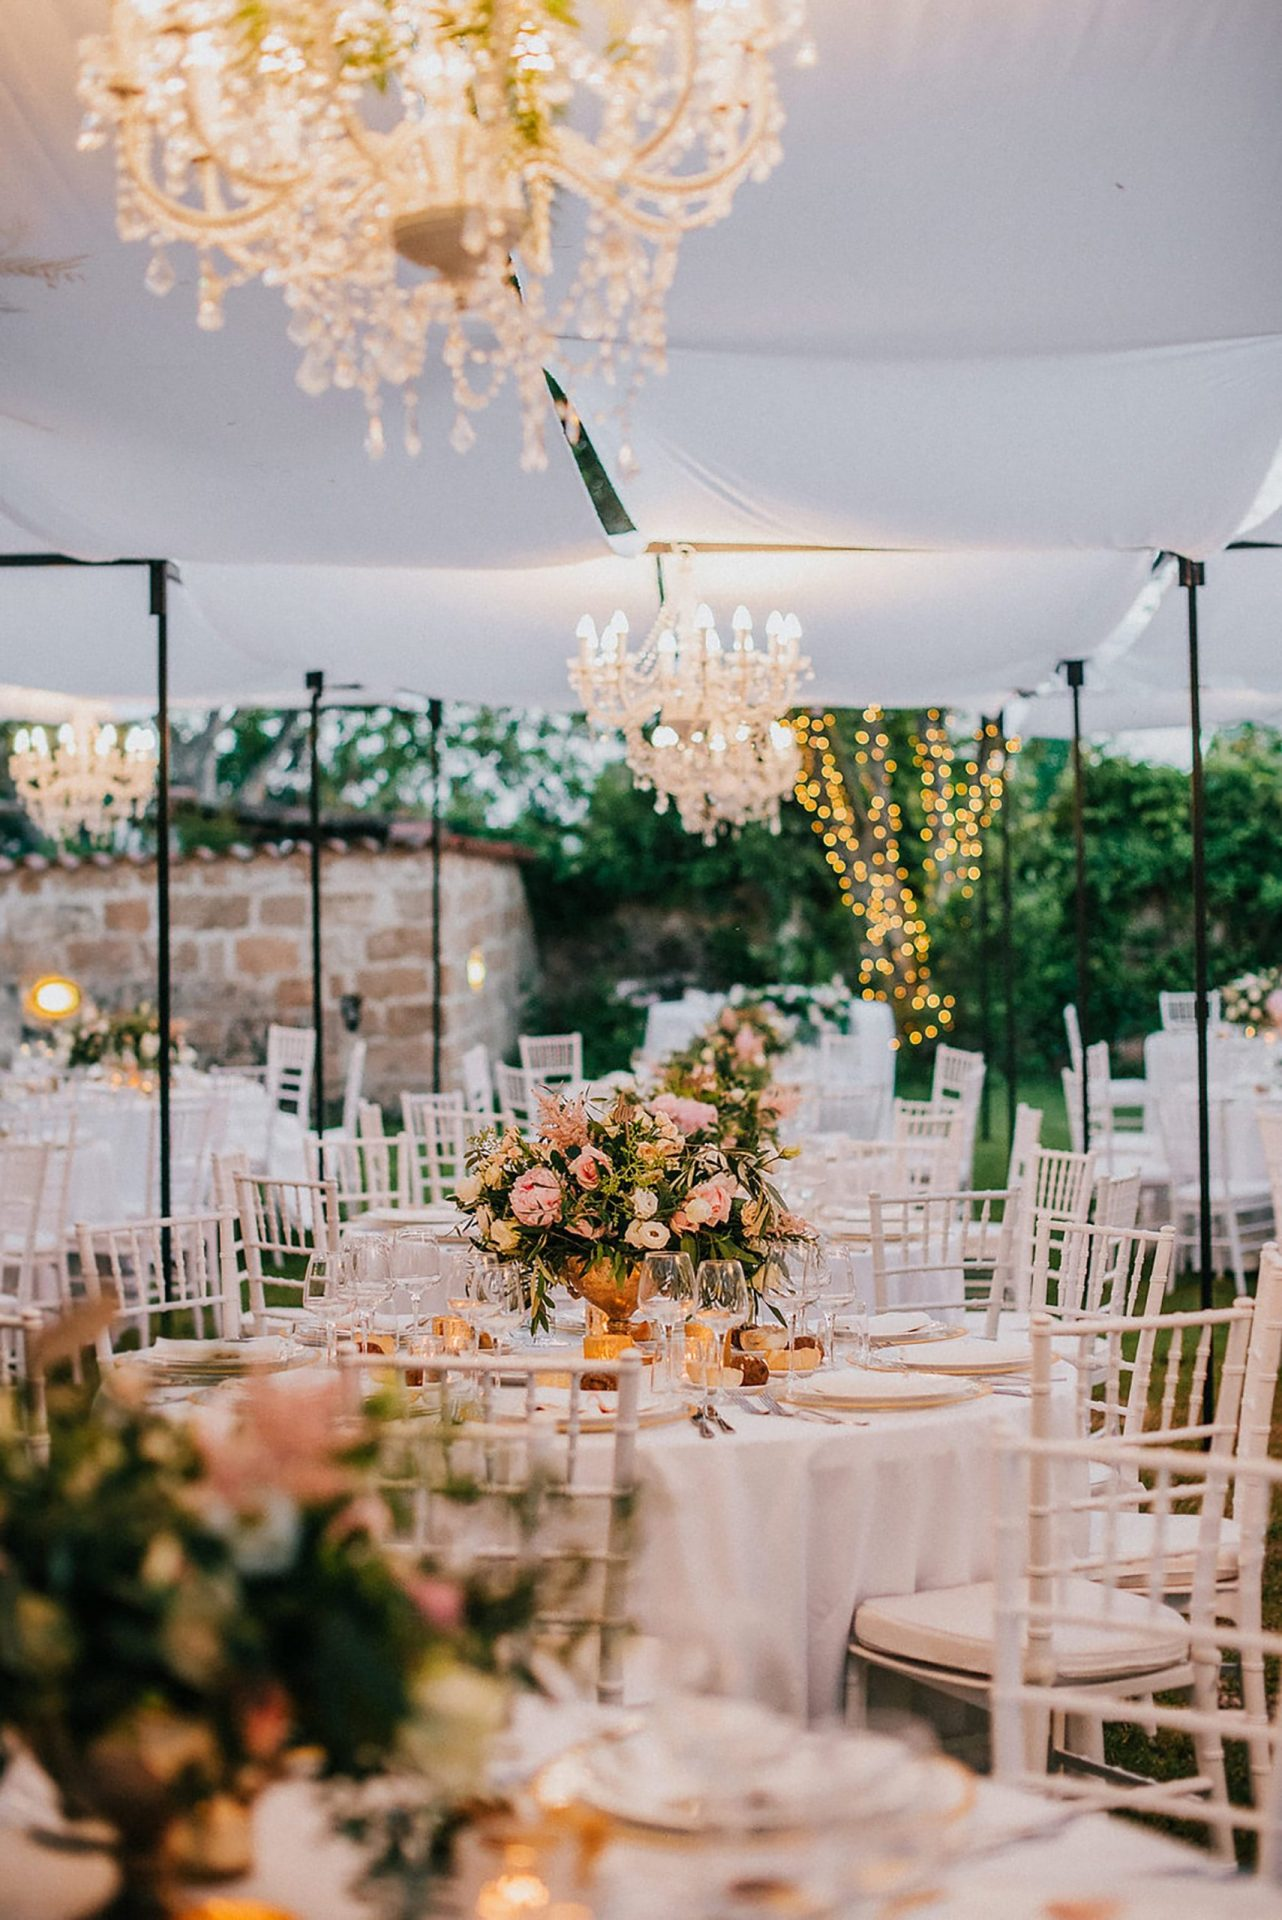 Ilaria e Giovanni, al fresco wedding reception, pastel tones centrepieces